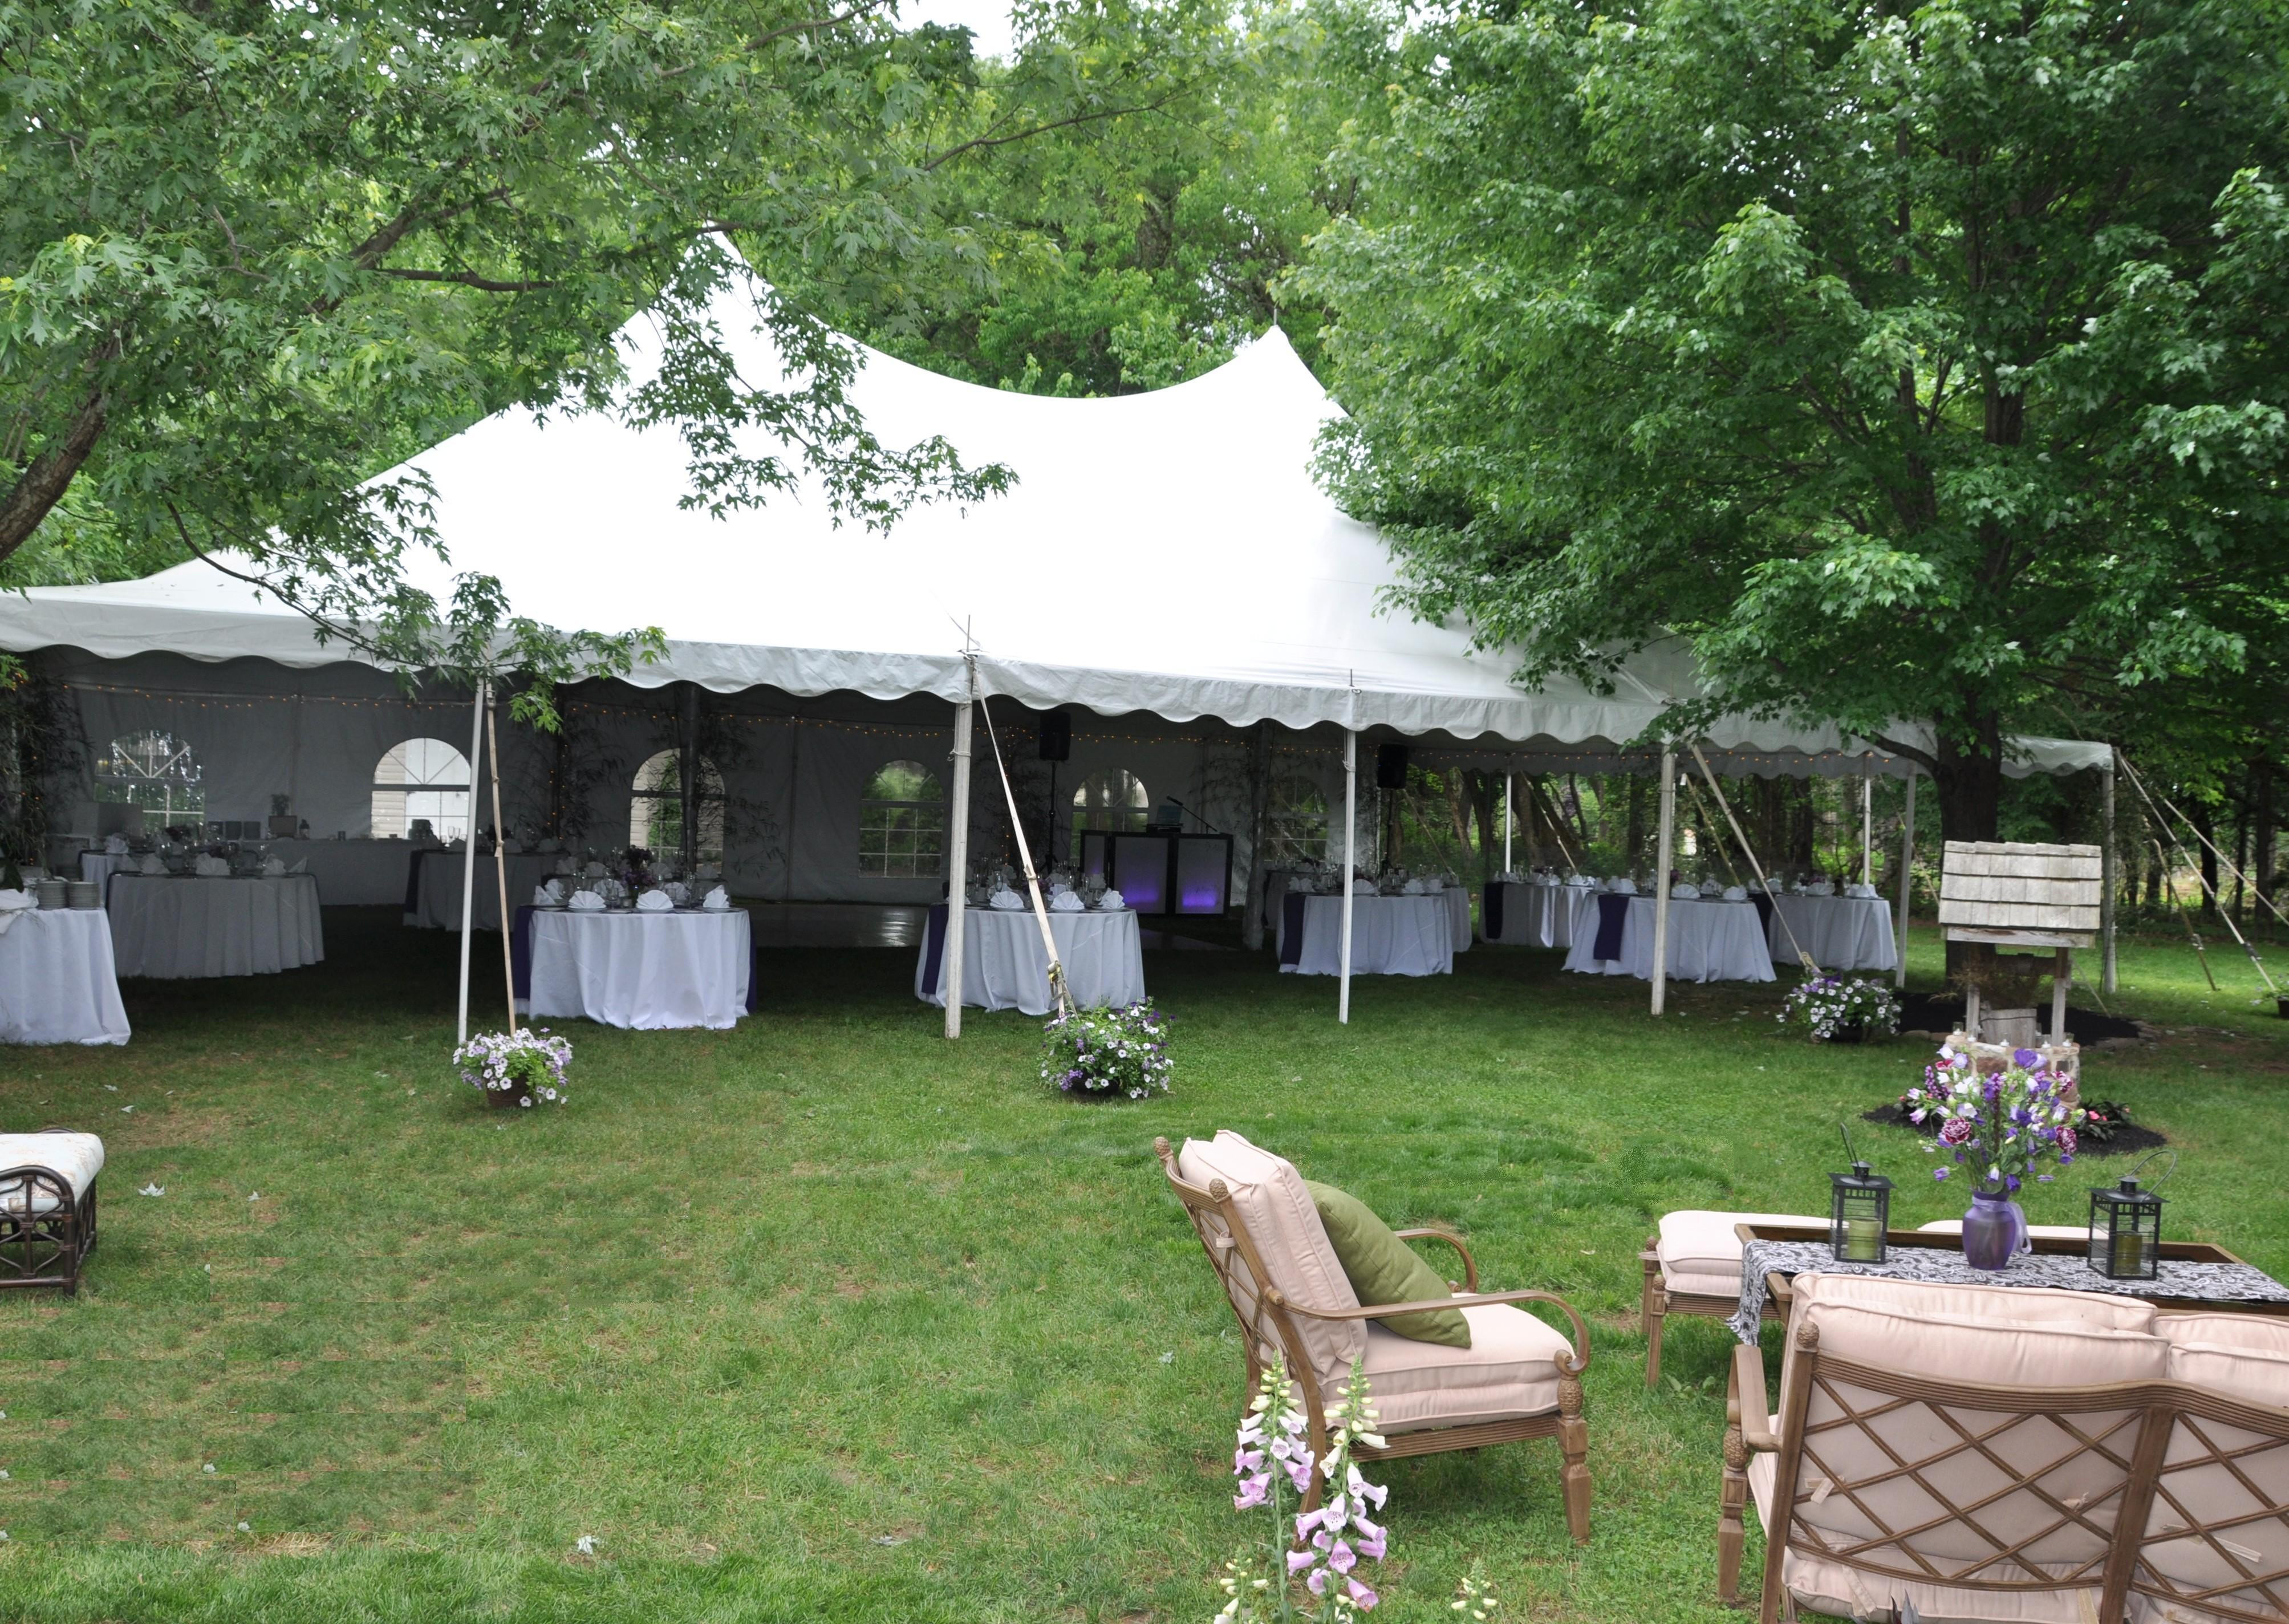 Best ideas about Backyard Wedding Rentals . Save or Pin Hamilton NJ Wedding Services Adams Party Rental Tent Now.